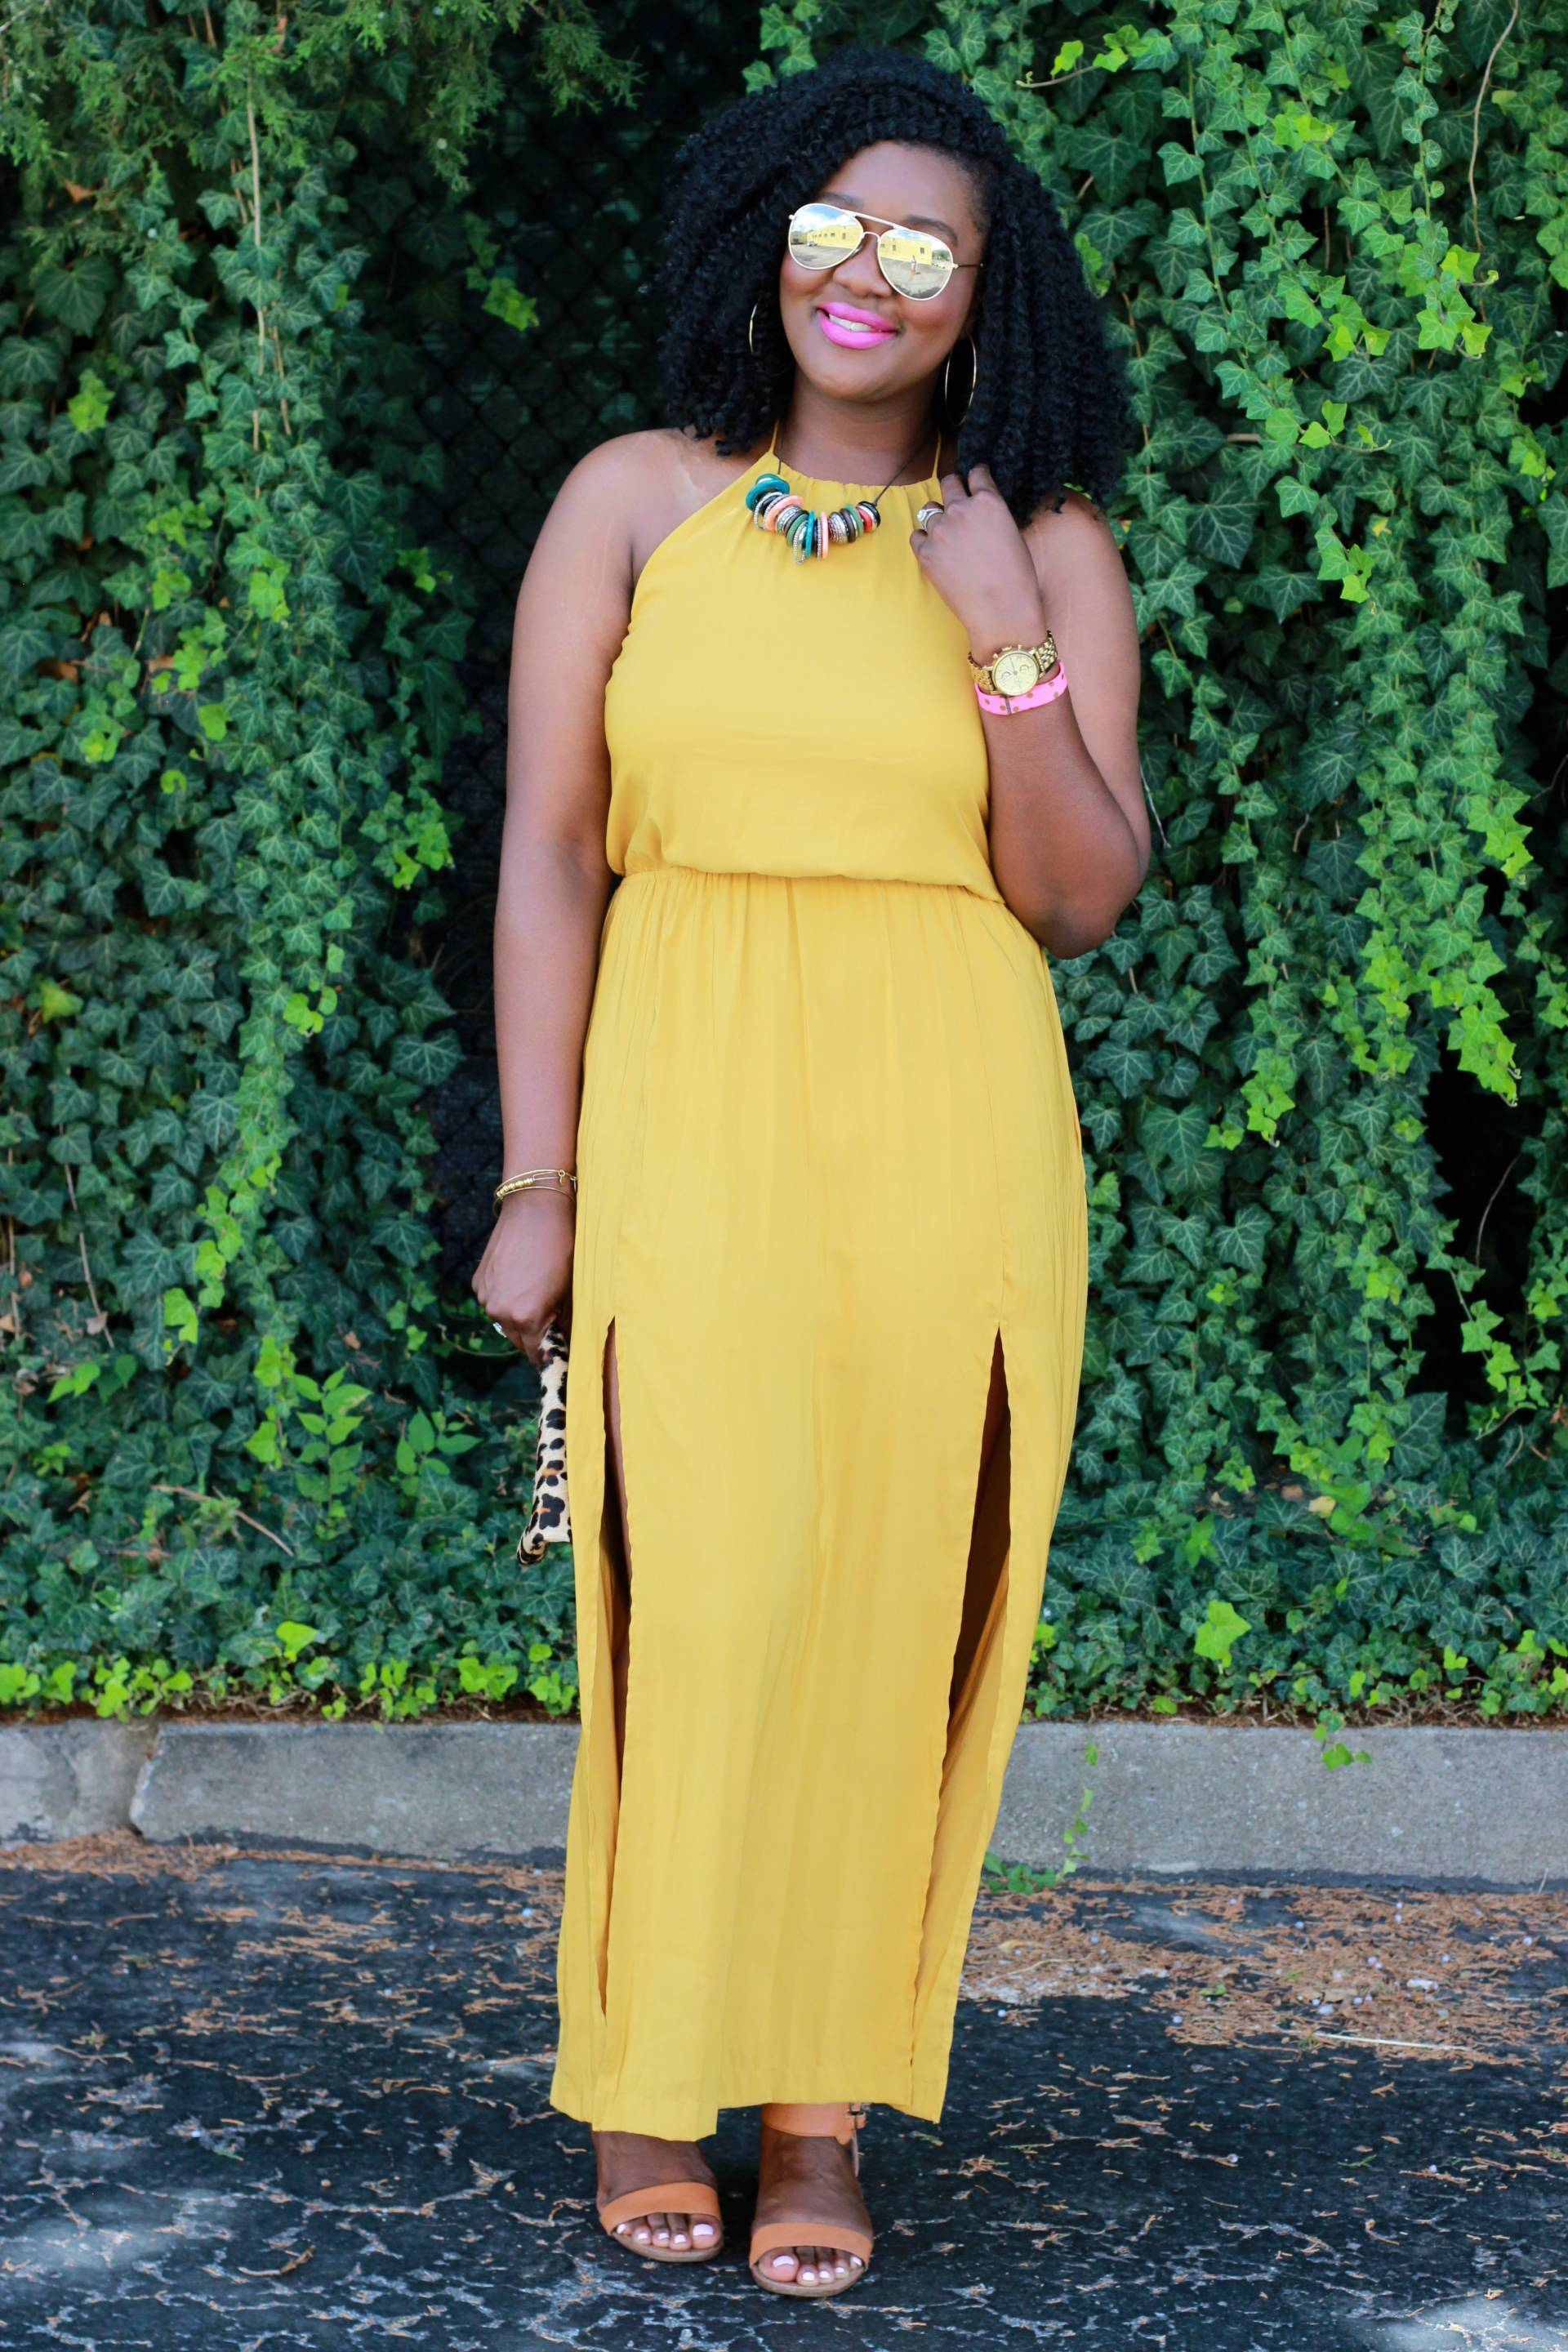 Dresses To Wear With Cowboy Boots To A Wedding.Maxi Dress To Wear With Cowboy Boots Saddha